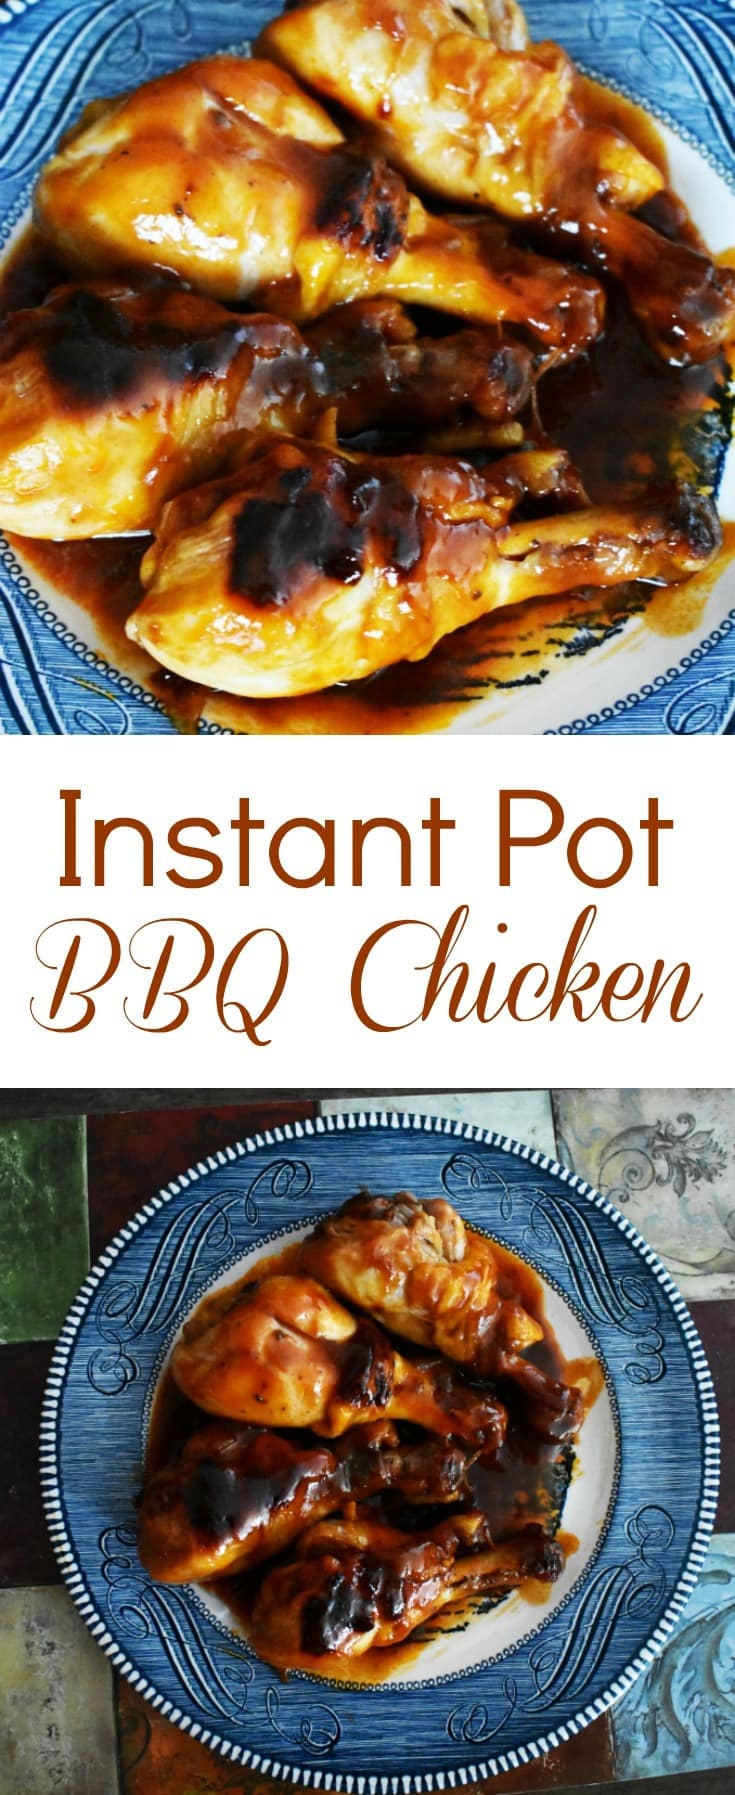 These Instant Pot BBQ Chicken Drumsticks are an easy and delicious dinner for the family but also work great as an appetizer! #instantpot #pressurecooker #chicken #bbqchicken via @wondermomwannab